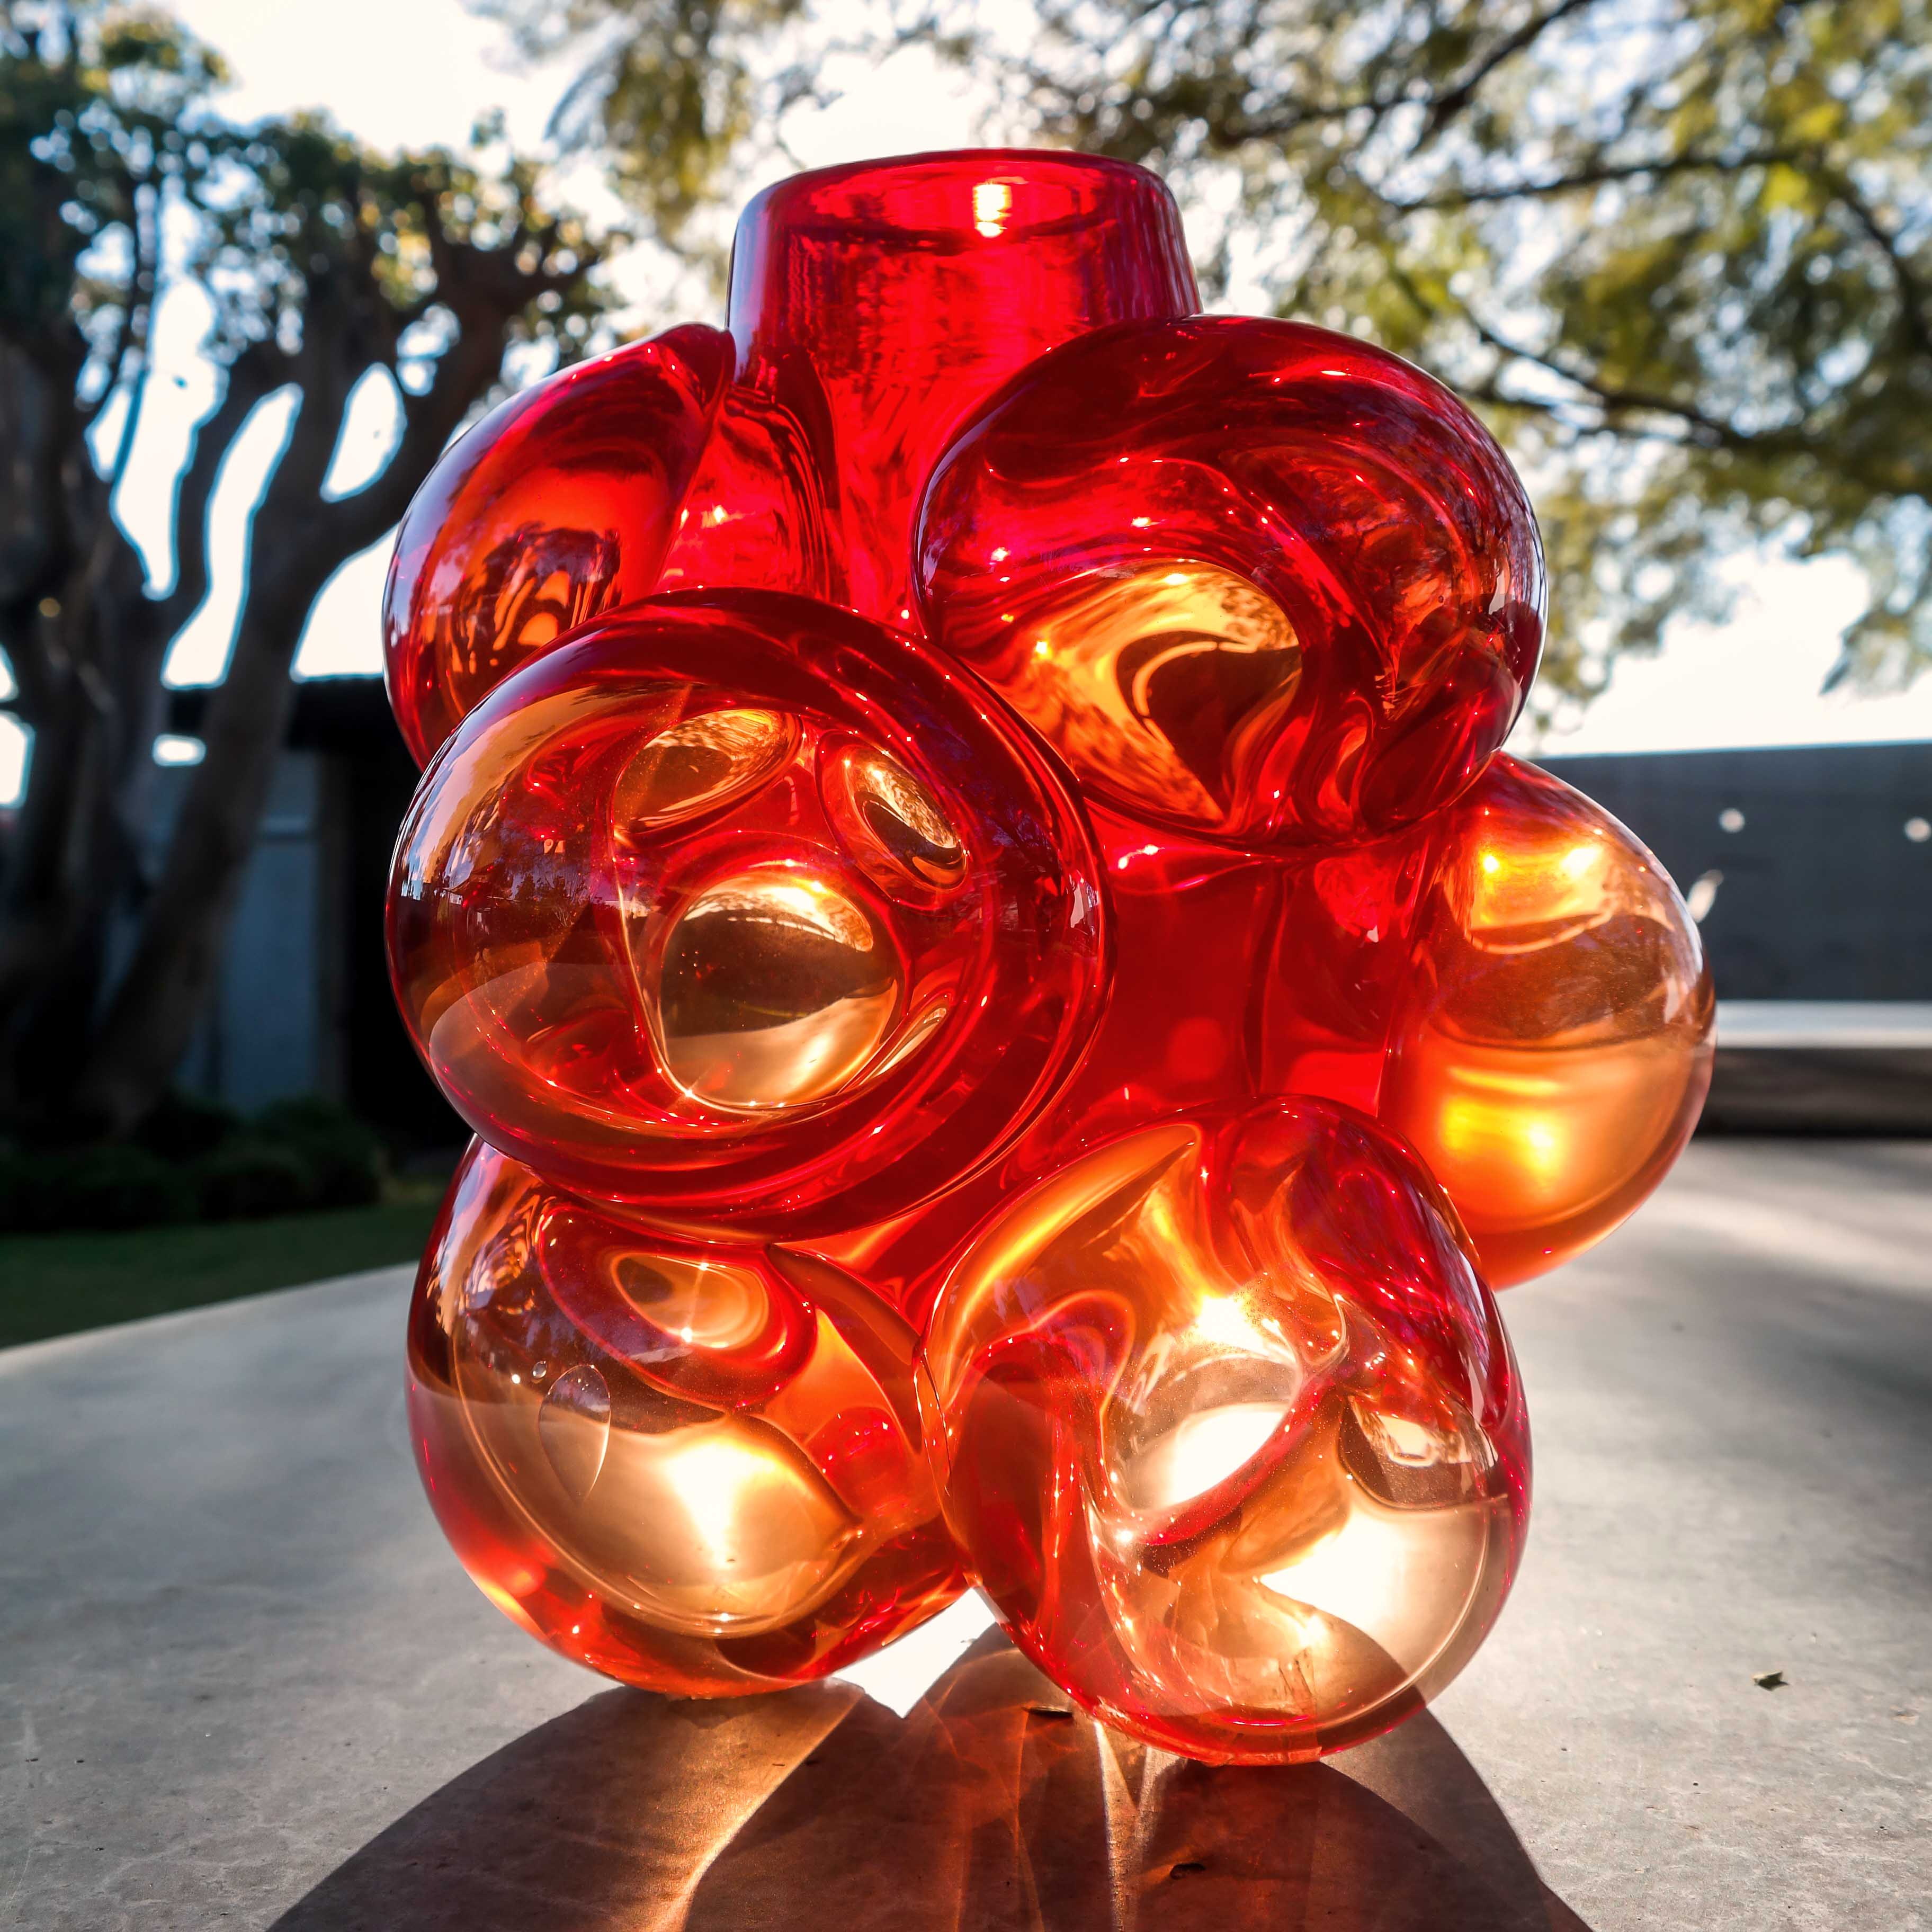 chihuly style glass by siemon and salazar